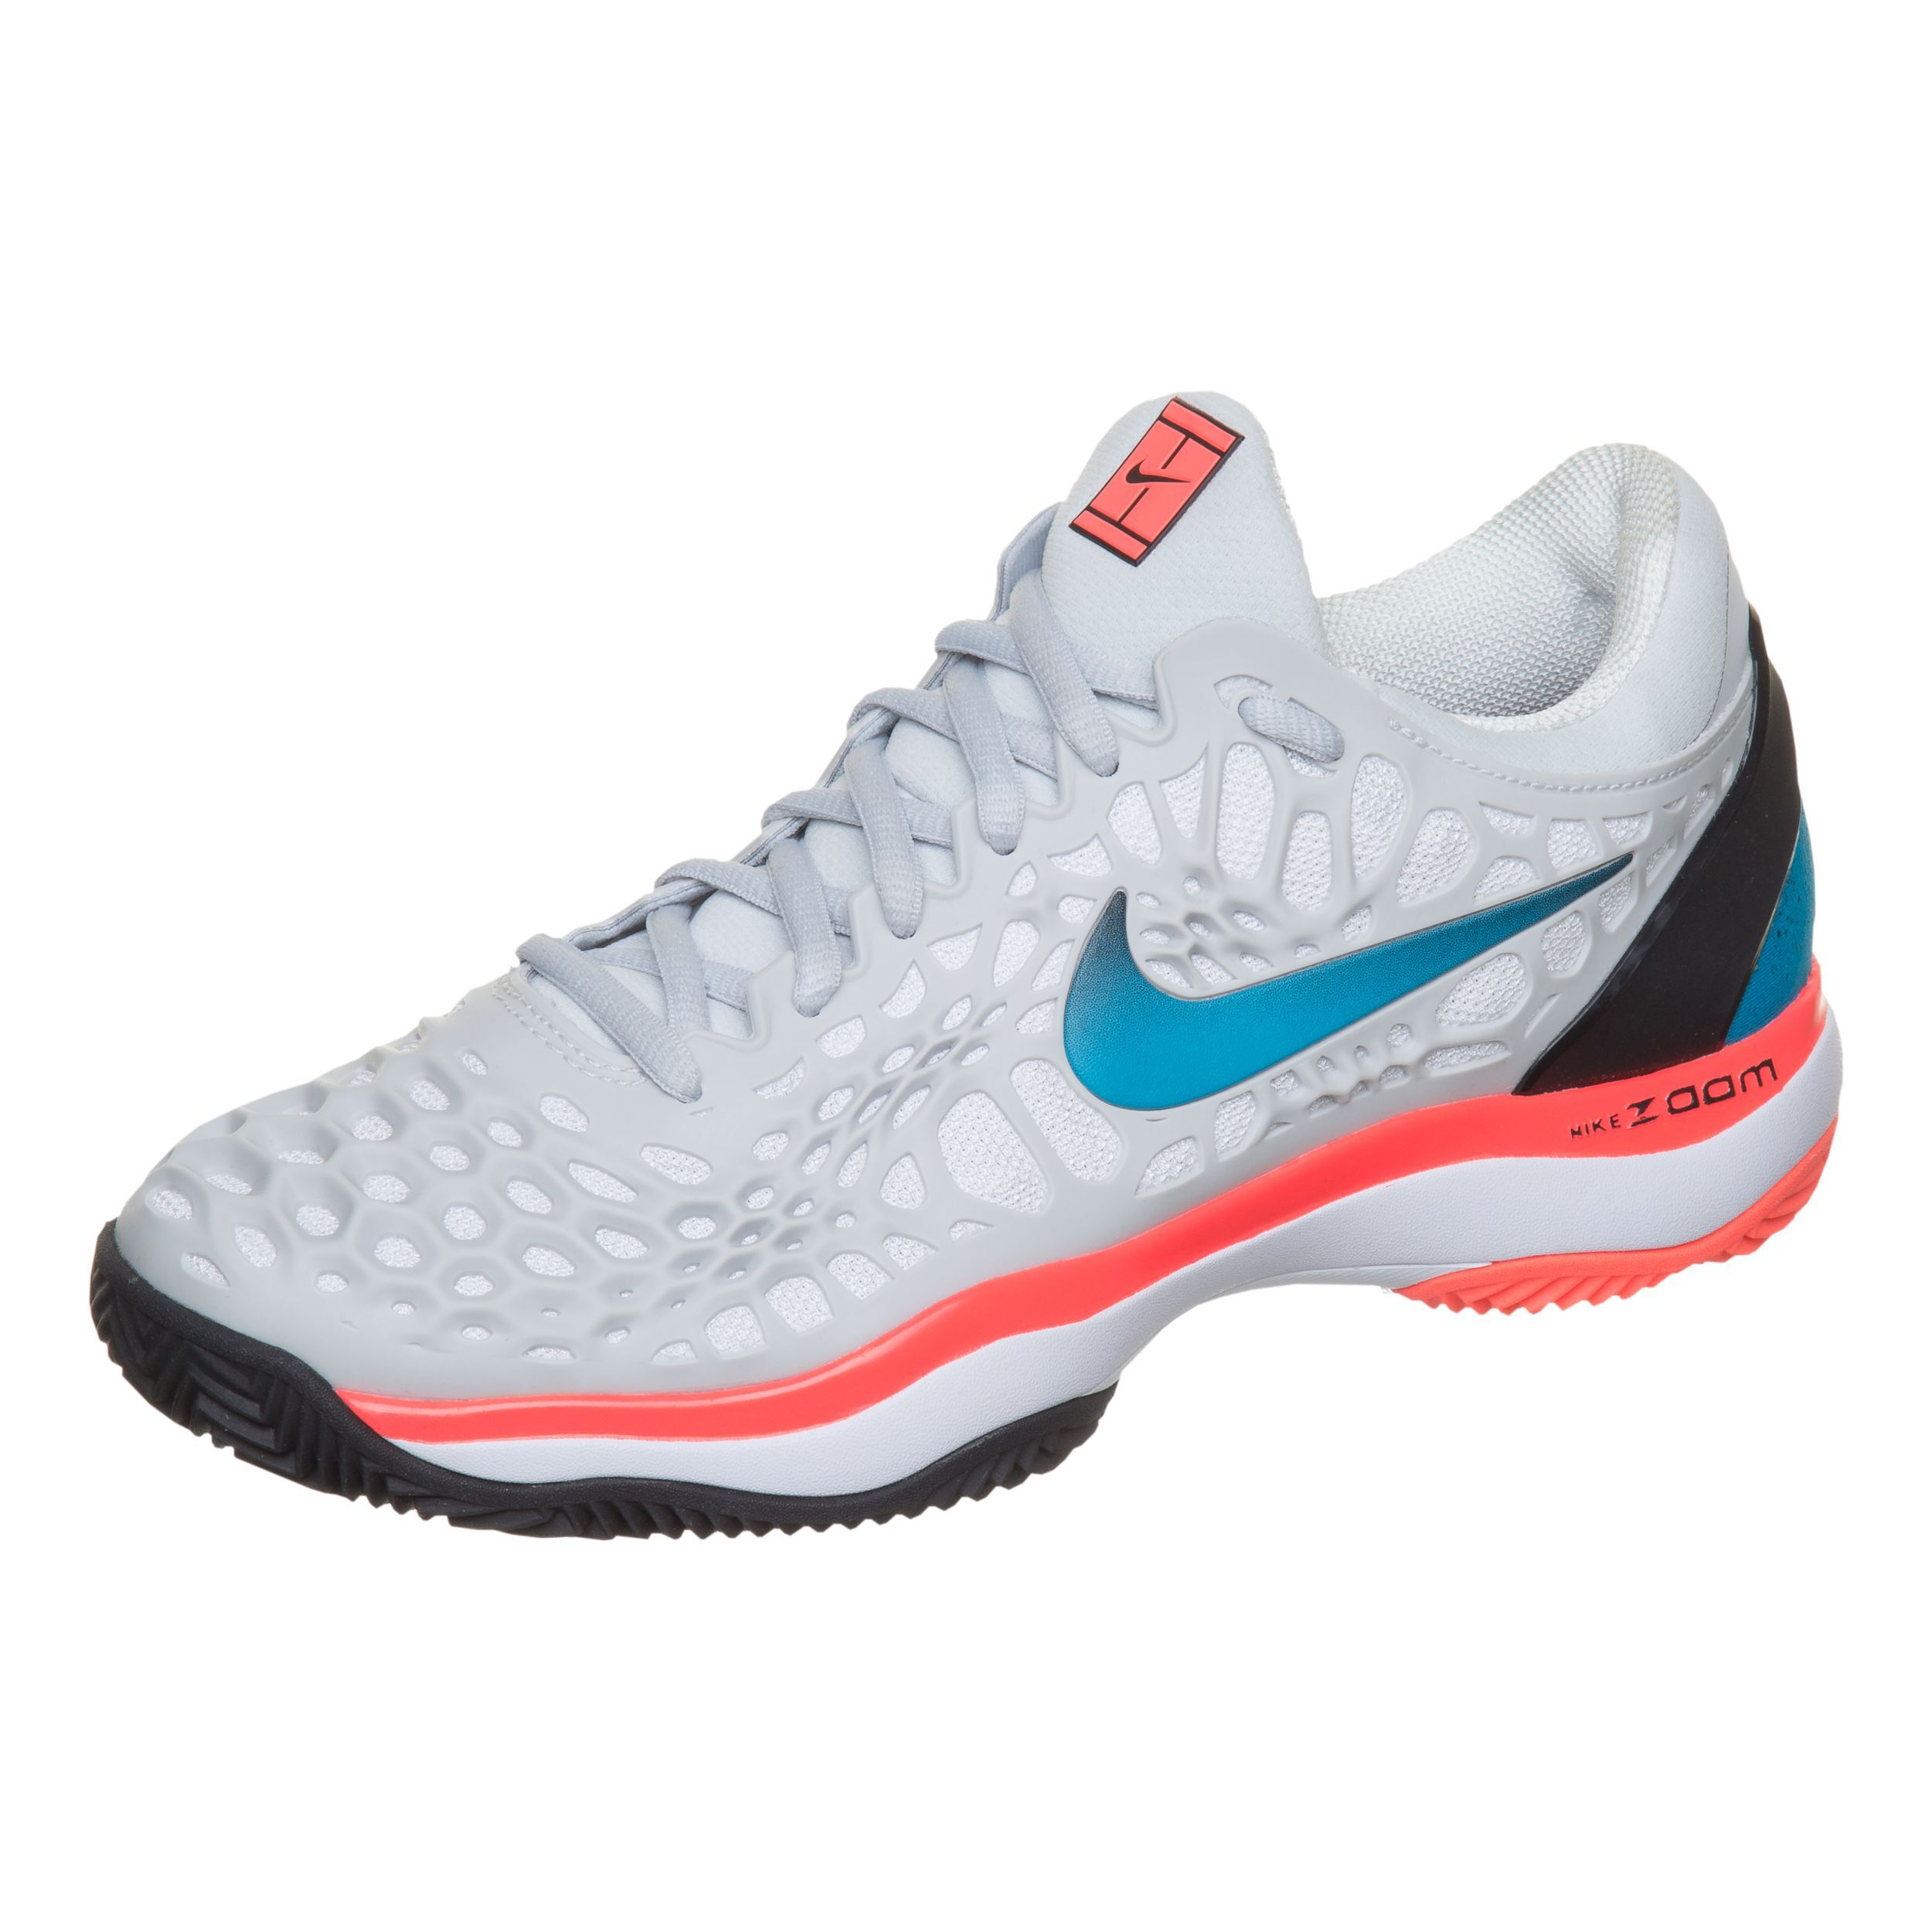 Nike Zoom Cage 3 Clay Chaussure Terre Battue Femmes Gris